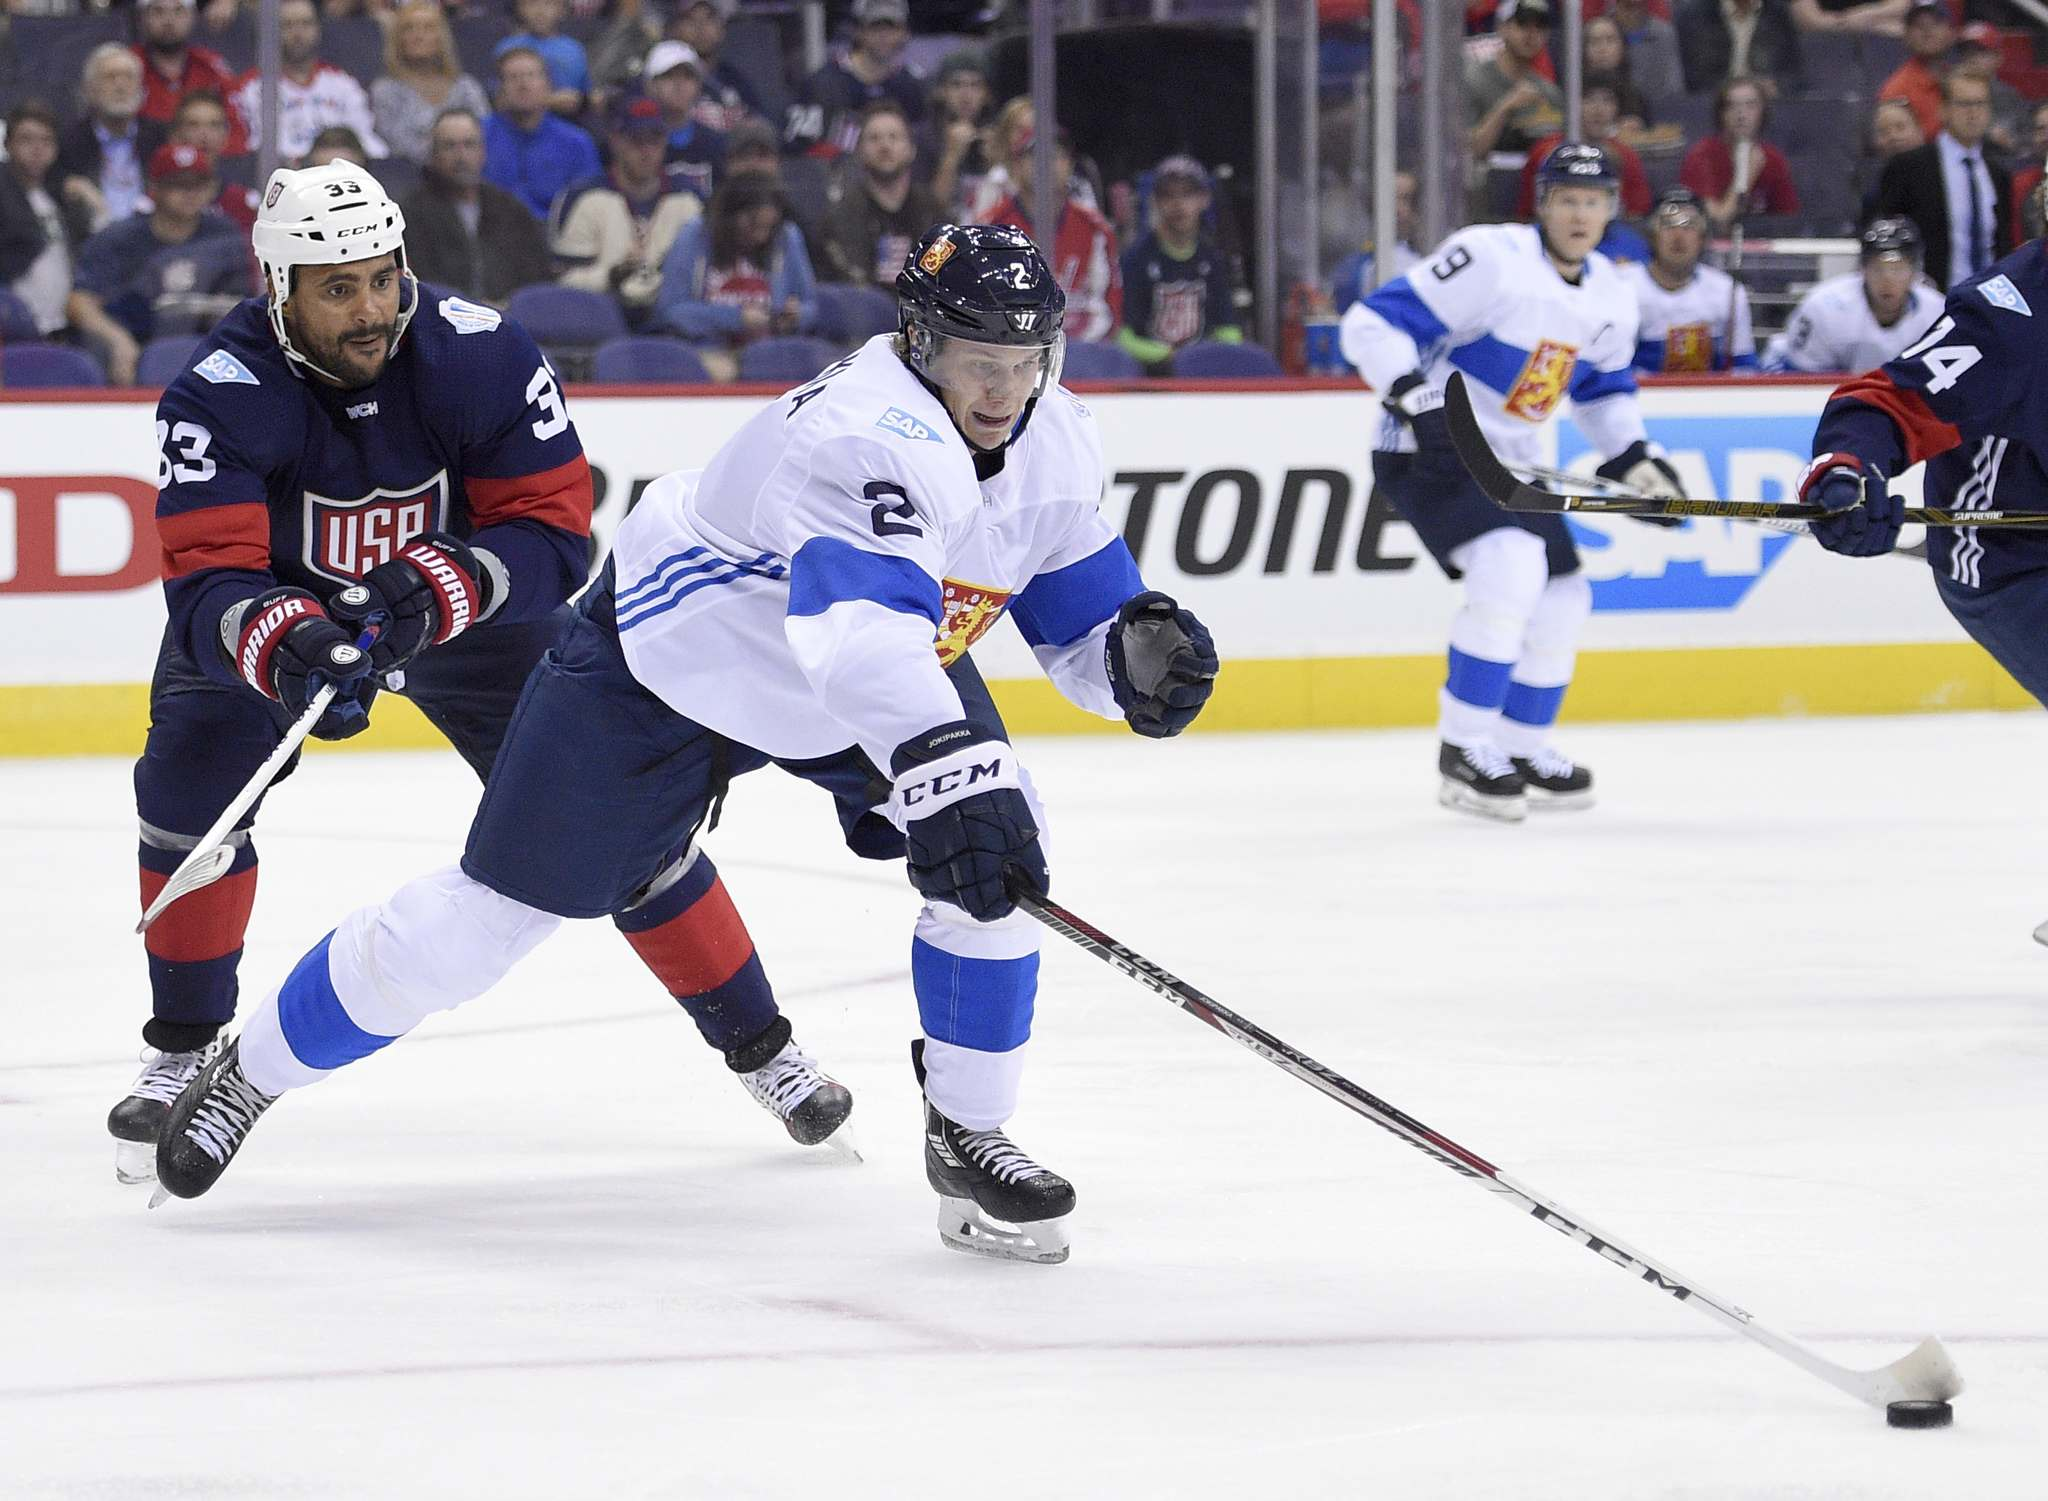 Nick Wass / The Associated Press</p><p>Finland defenseman Jyrki Jokipakka (2) reaches for the puck next to U.S. defenseman Dustin Byfuglien (33) during the first period of an exhibition game, part of the World Cup of Hockey, Tuesday, Sept. 13, 2016, in Washington.</p>